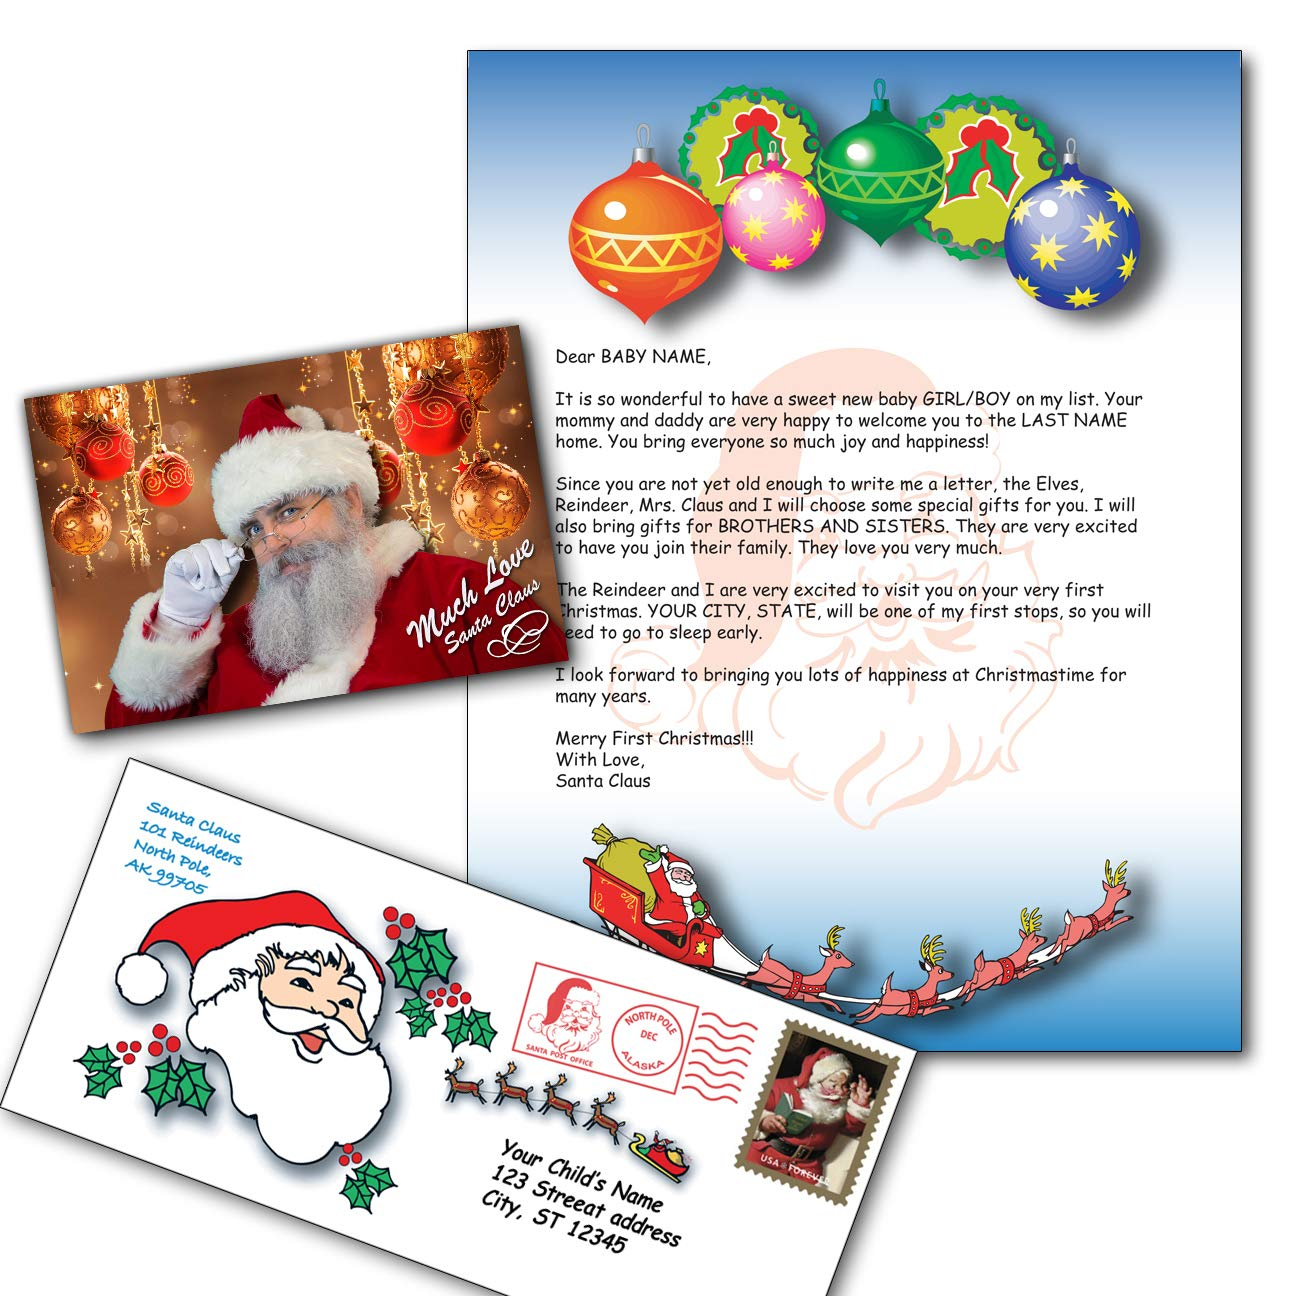 Amazon.com : Personalized Santa Letter : Paper Stationery : Office ...